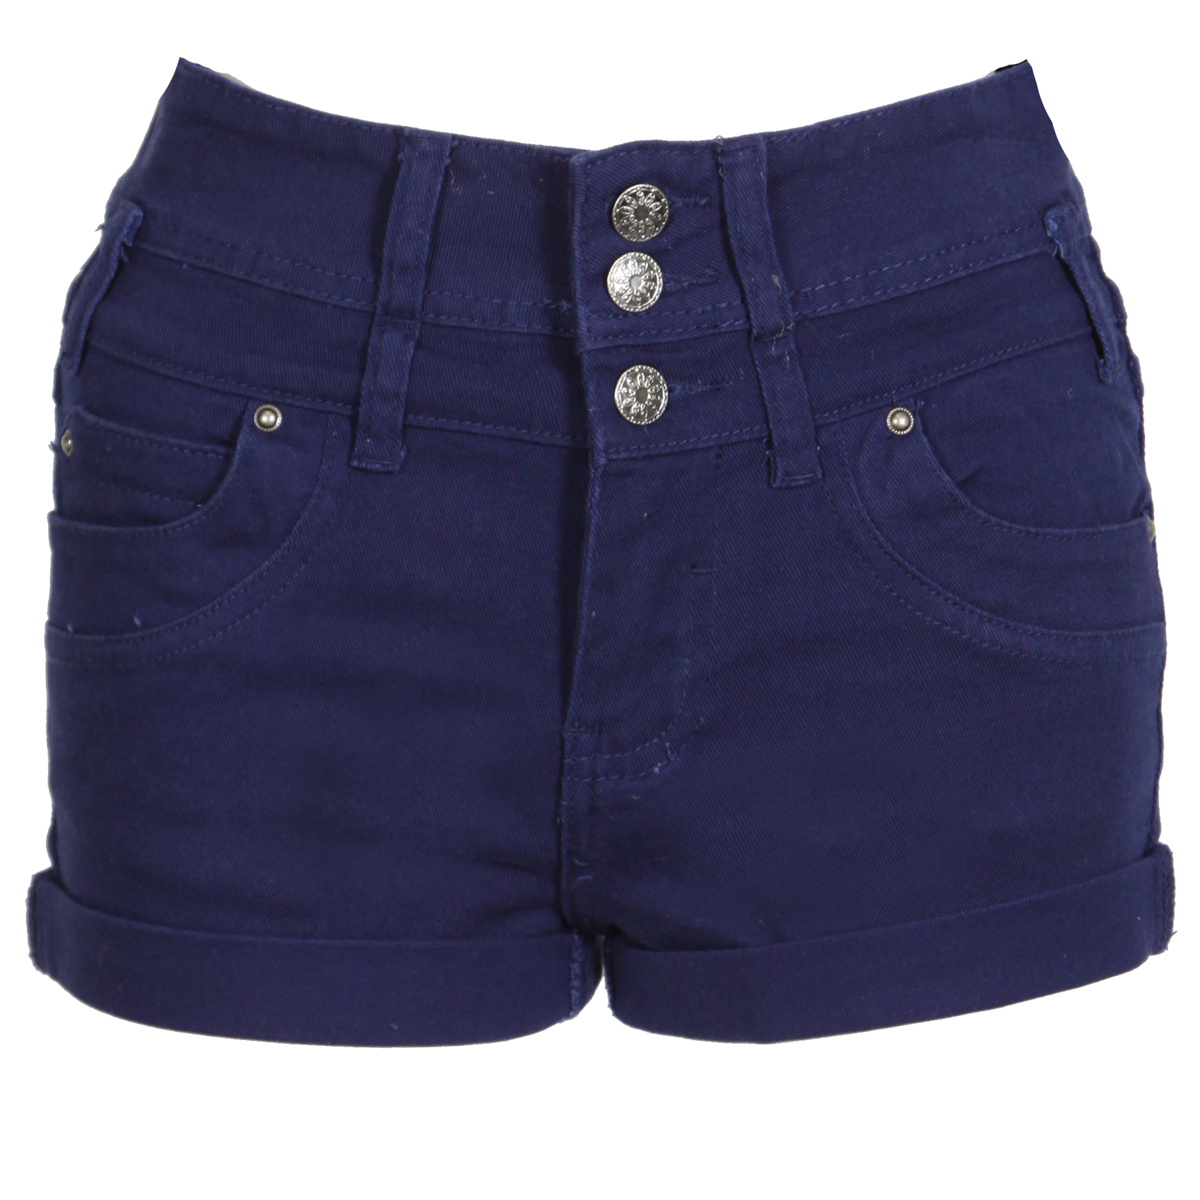 NEW WOMENS NAVY BLUE DENIM SHORTS HIGH WAIST HOT PANTS HOTPANTS LADIES CASUAL Preview